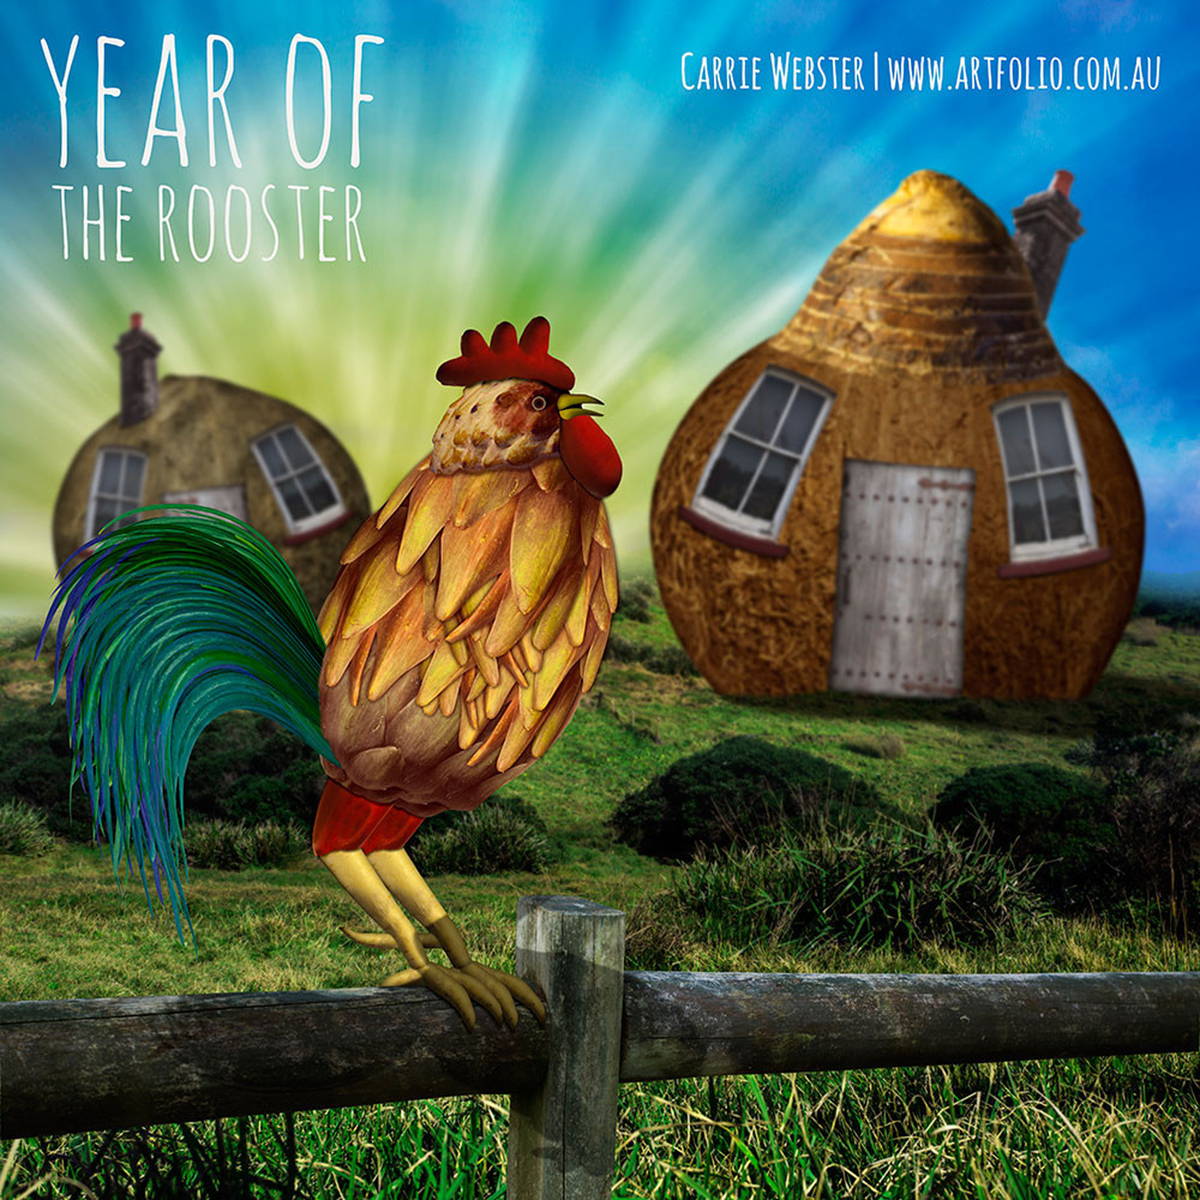 Carrie Webster - The Year of the Rooster